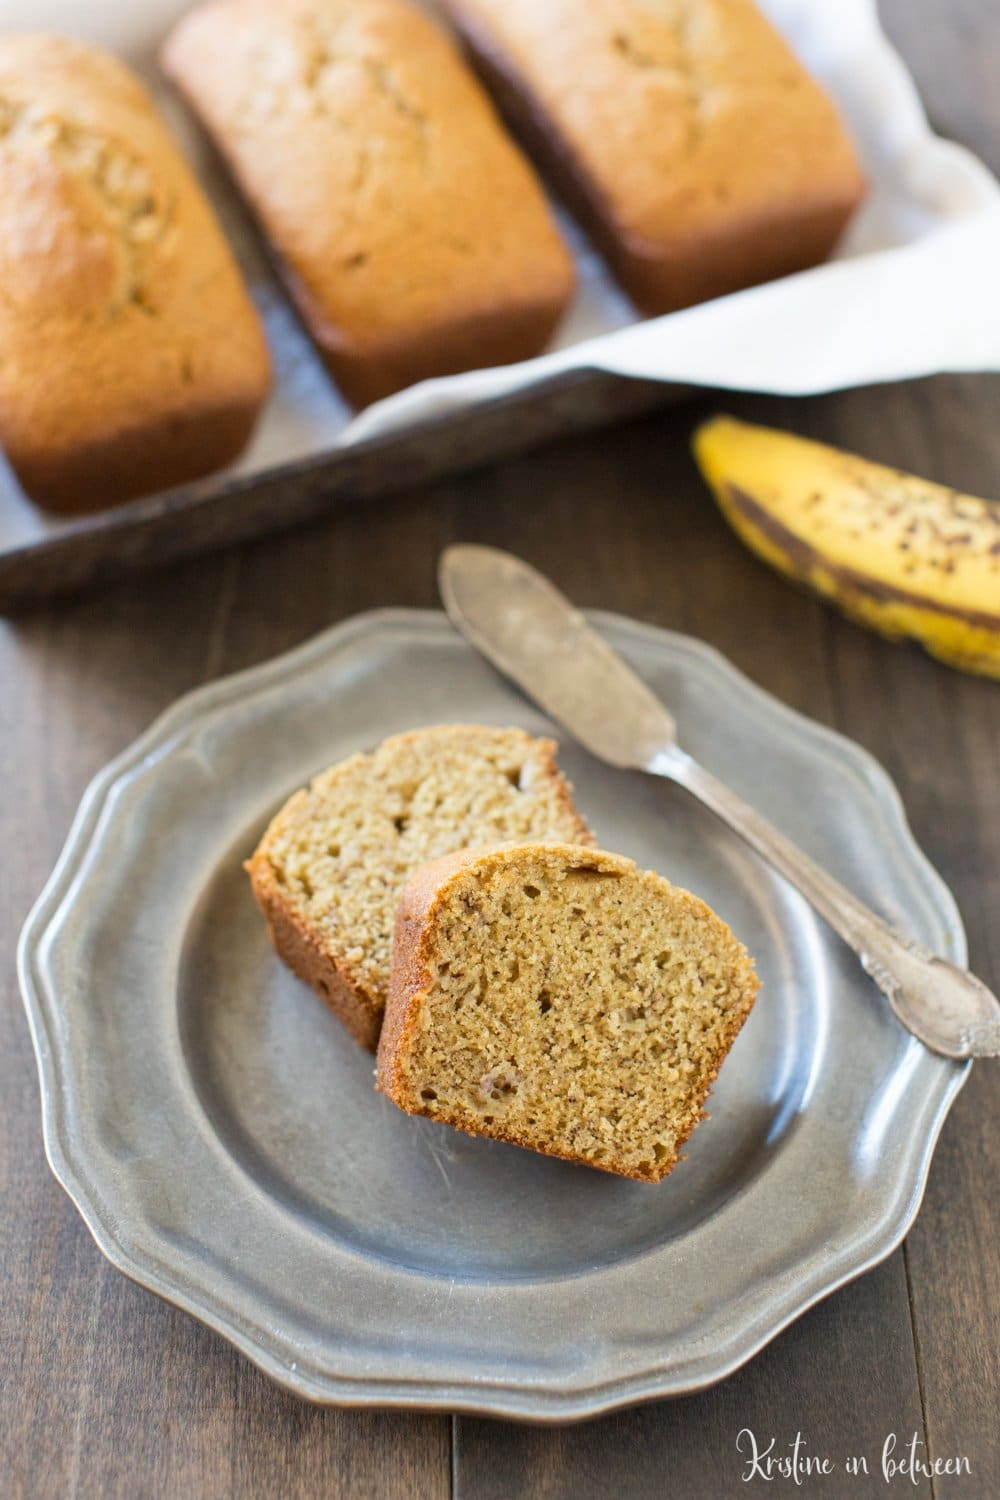 You'll love this perfectly sweet traditional banana bread recipe!